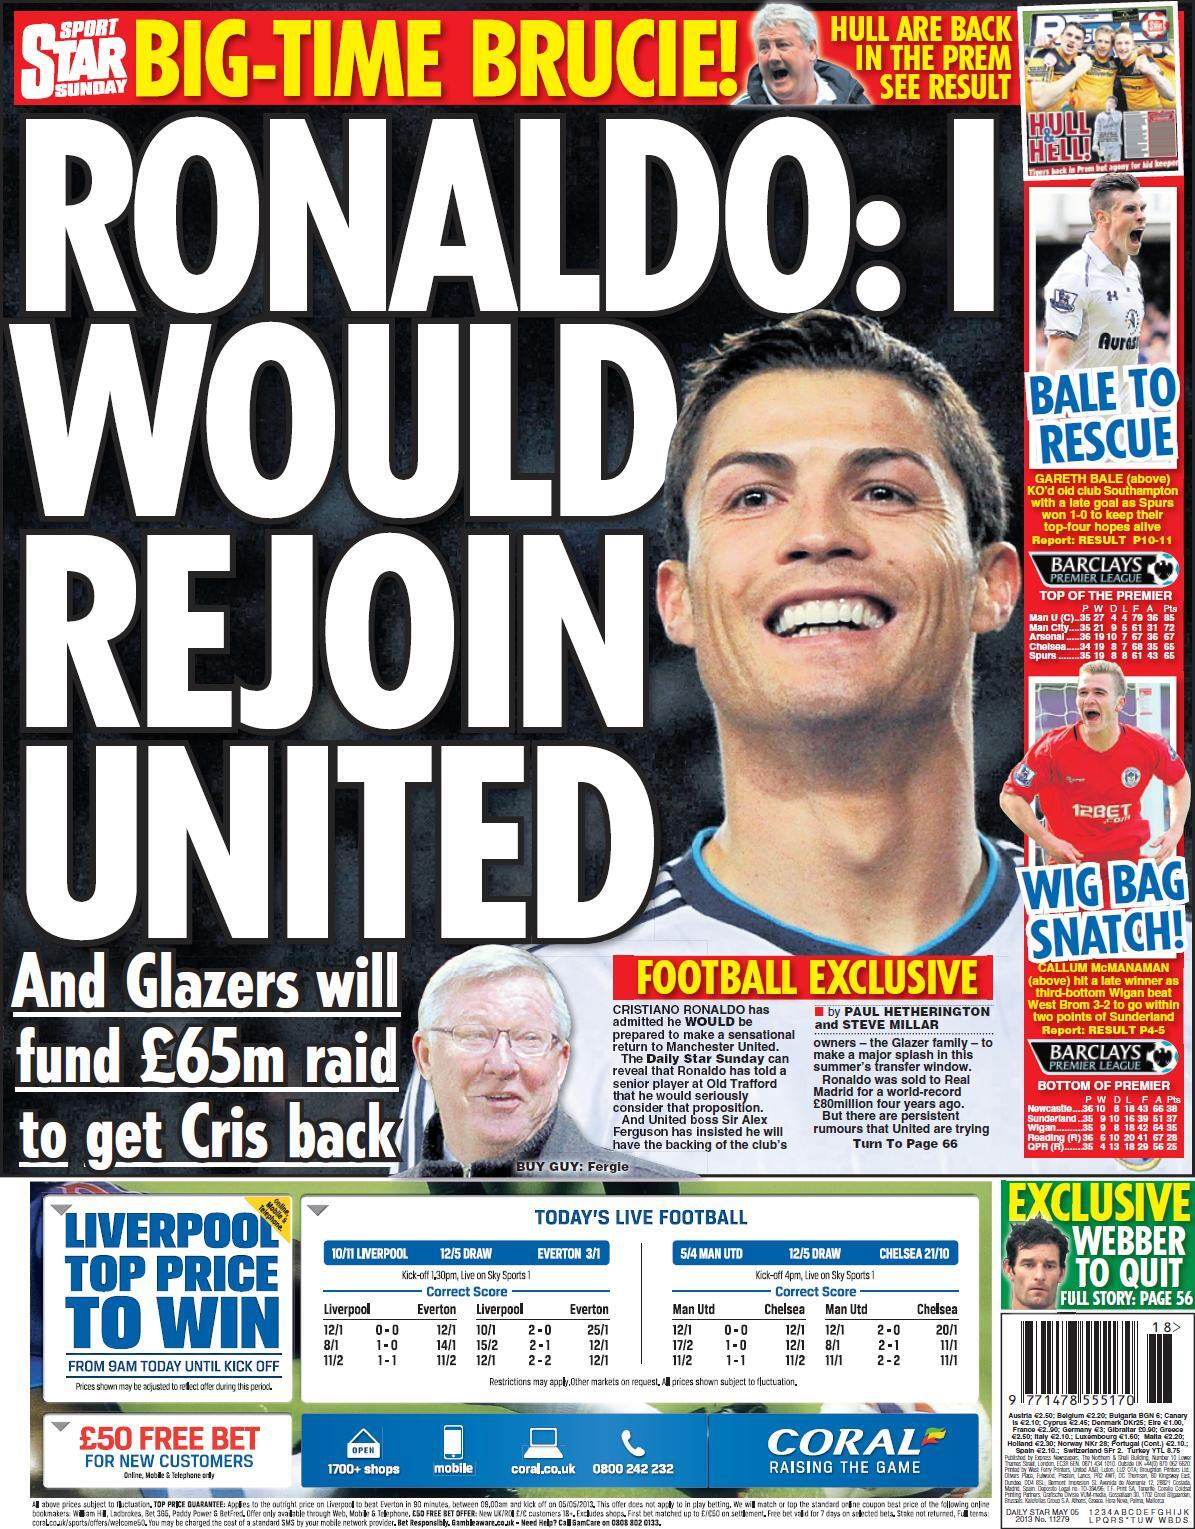 Picture: Star on Sunday splash with Ronaldo would rejoin Man United, Glazers back £65m bid